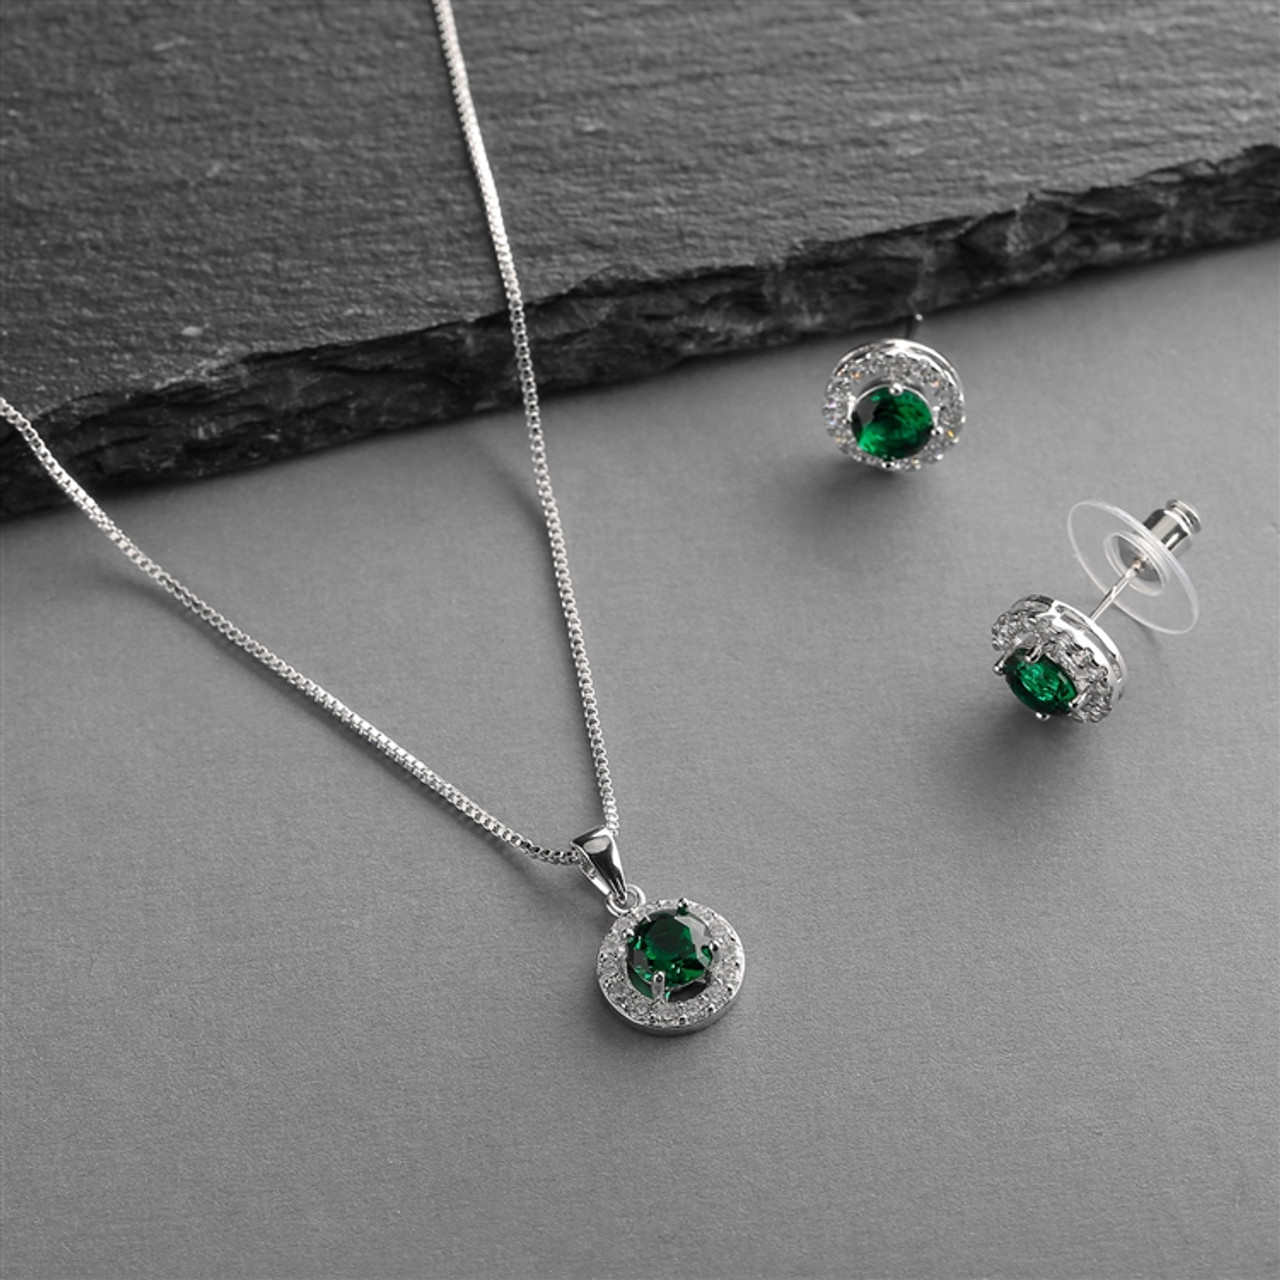 Mariell Cubic Zirconia Round Shape Halo Necklace and Stud Earrings Set - Emerald 4552S-EM